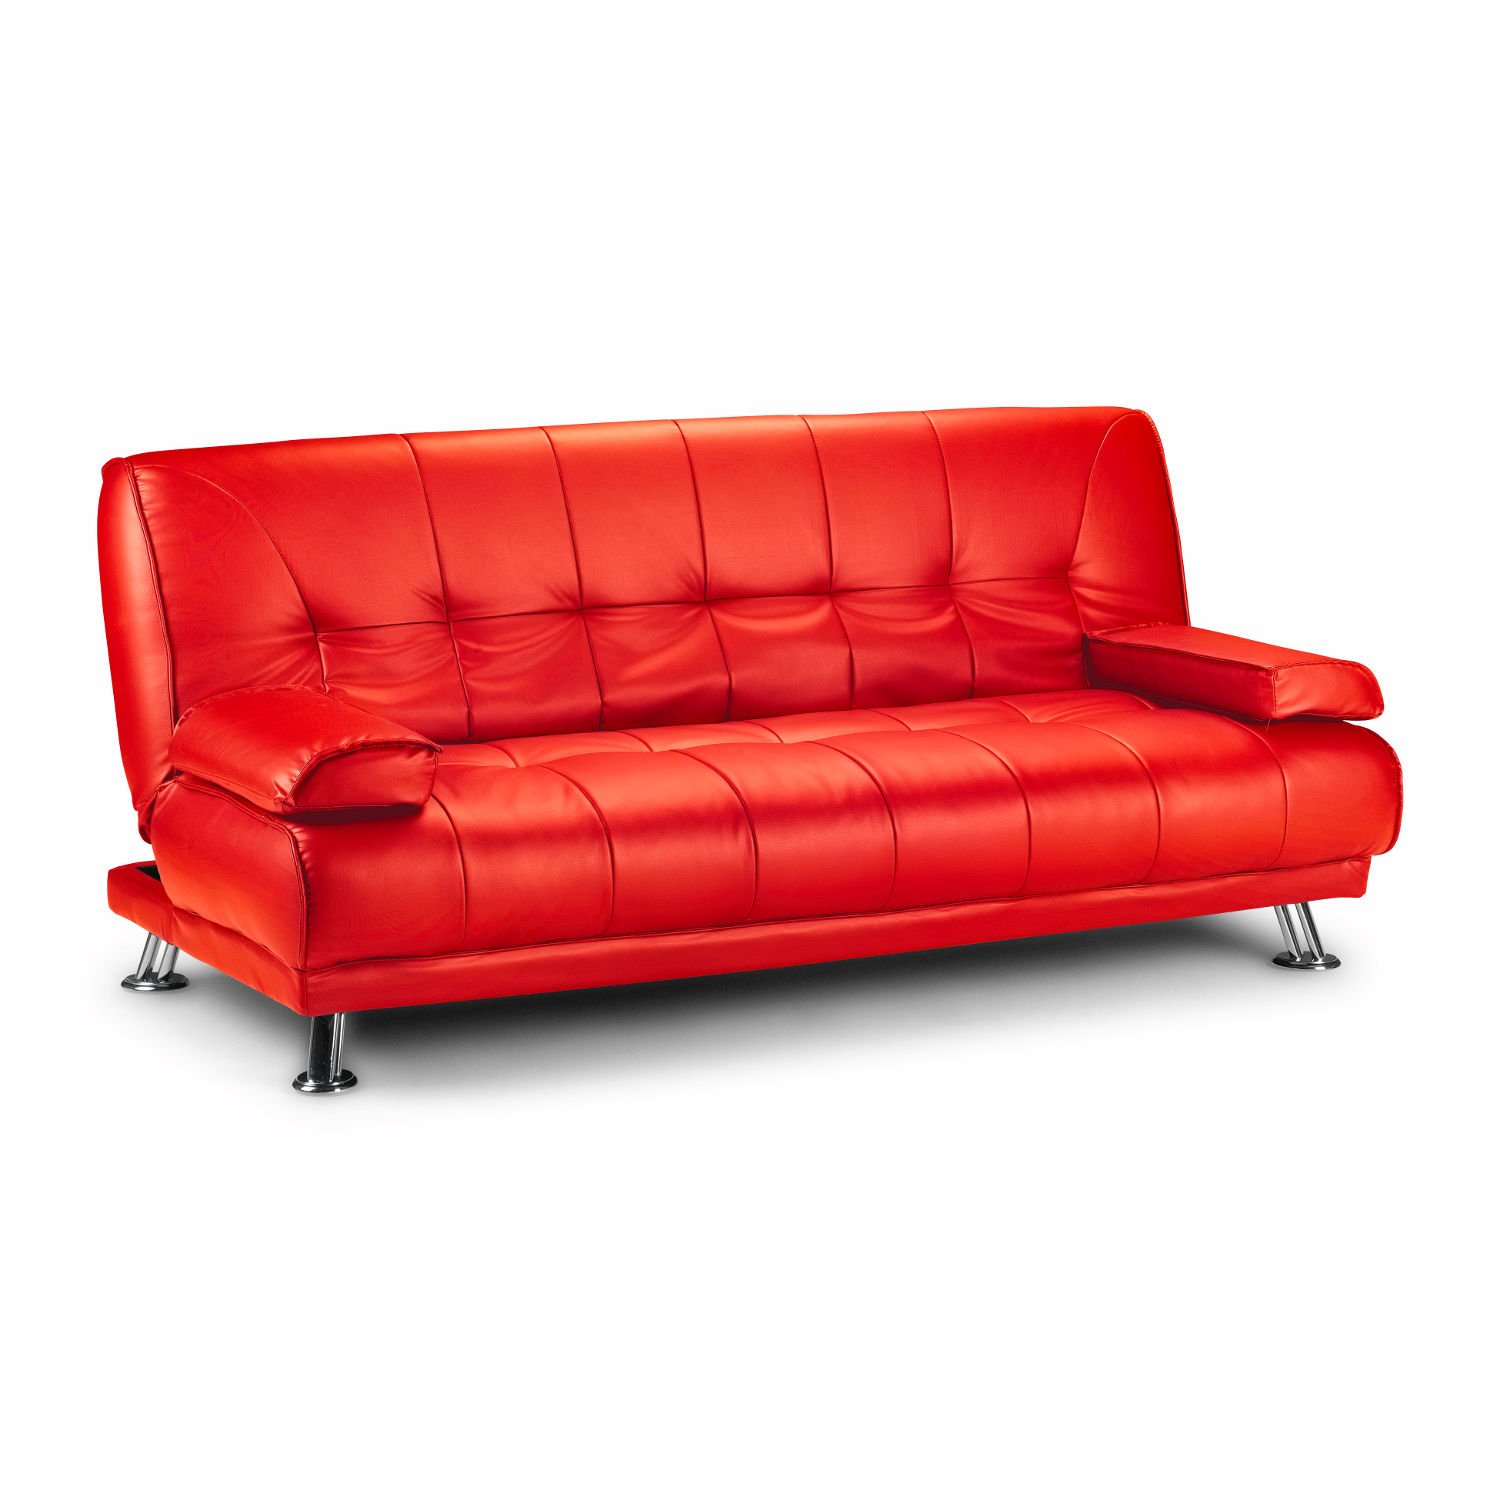 Fabulous Limitless Home Venice Faux Leather Sofa Suite Sette Sofabed With Chrome Feet Red Download Free Architecture Designs Philgrimeyleaguecom